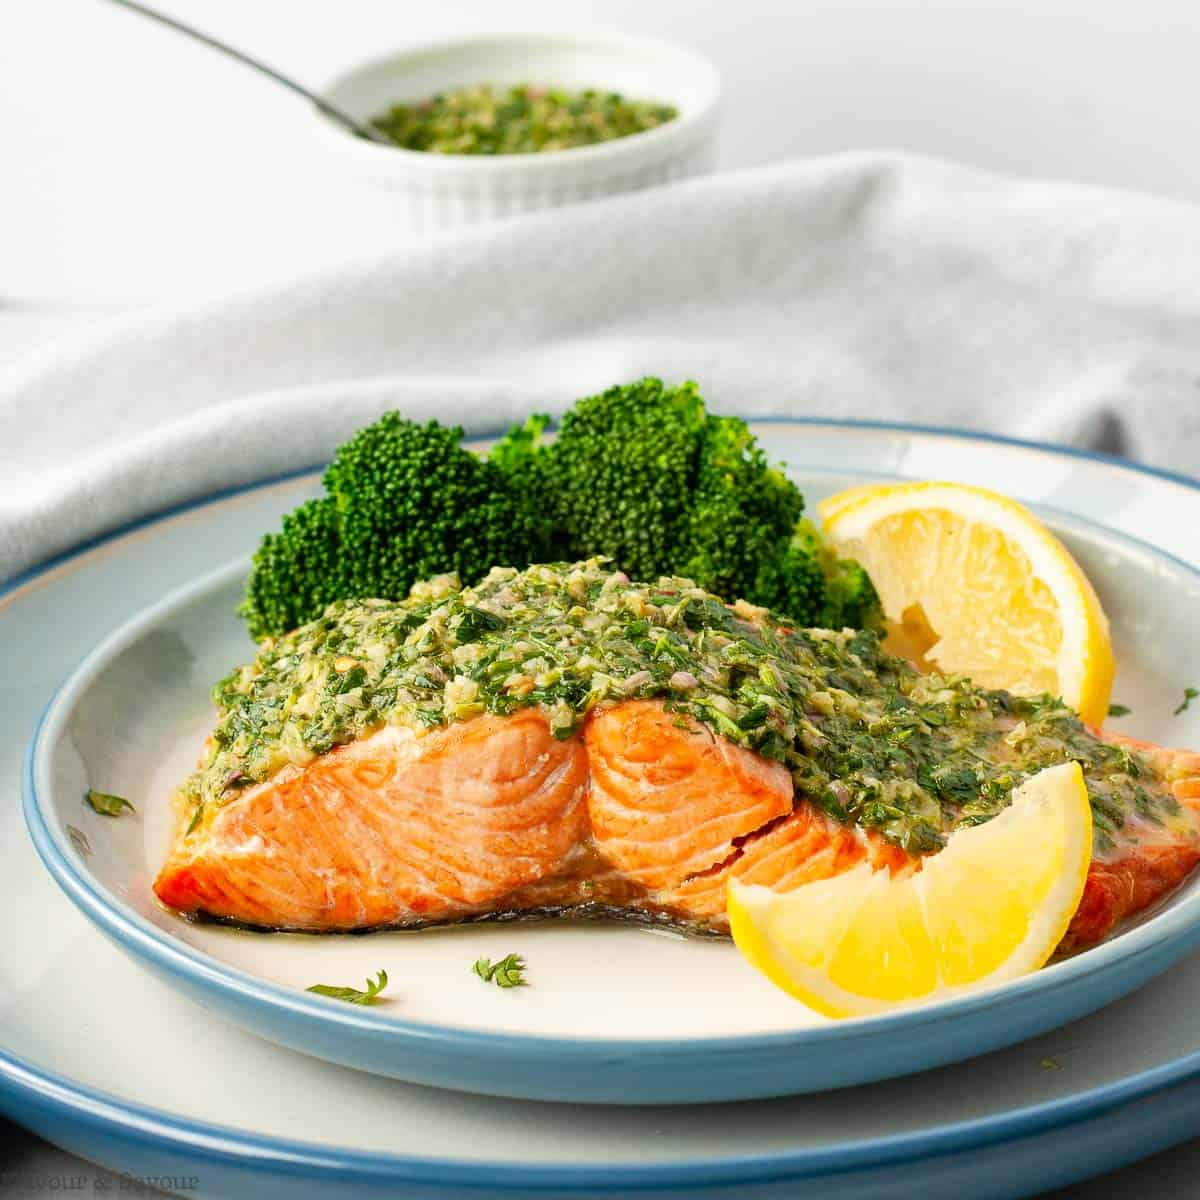 A salmon fillet cooked in an air fryer topped with chimichurri sauce served with lemon wedges.